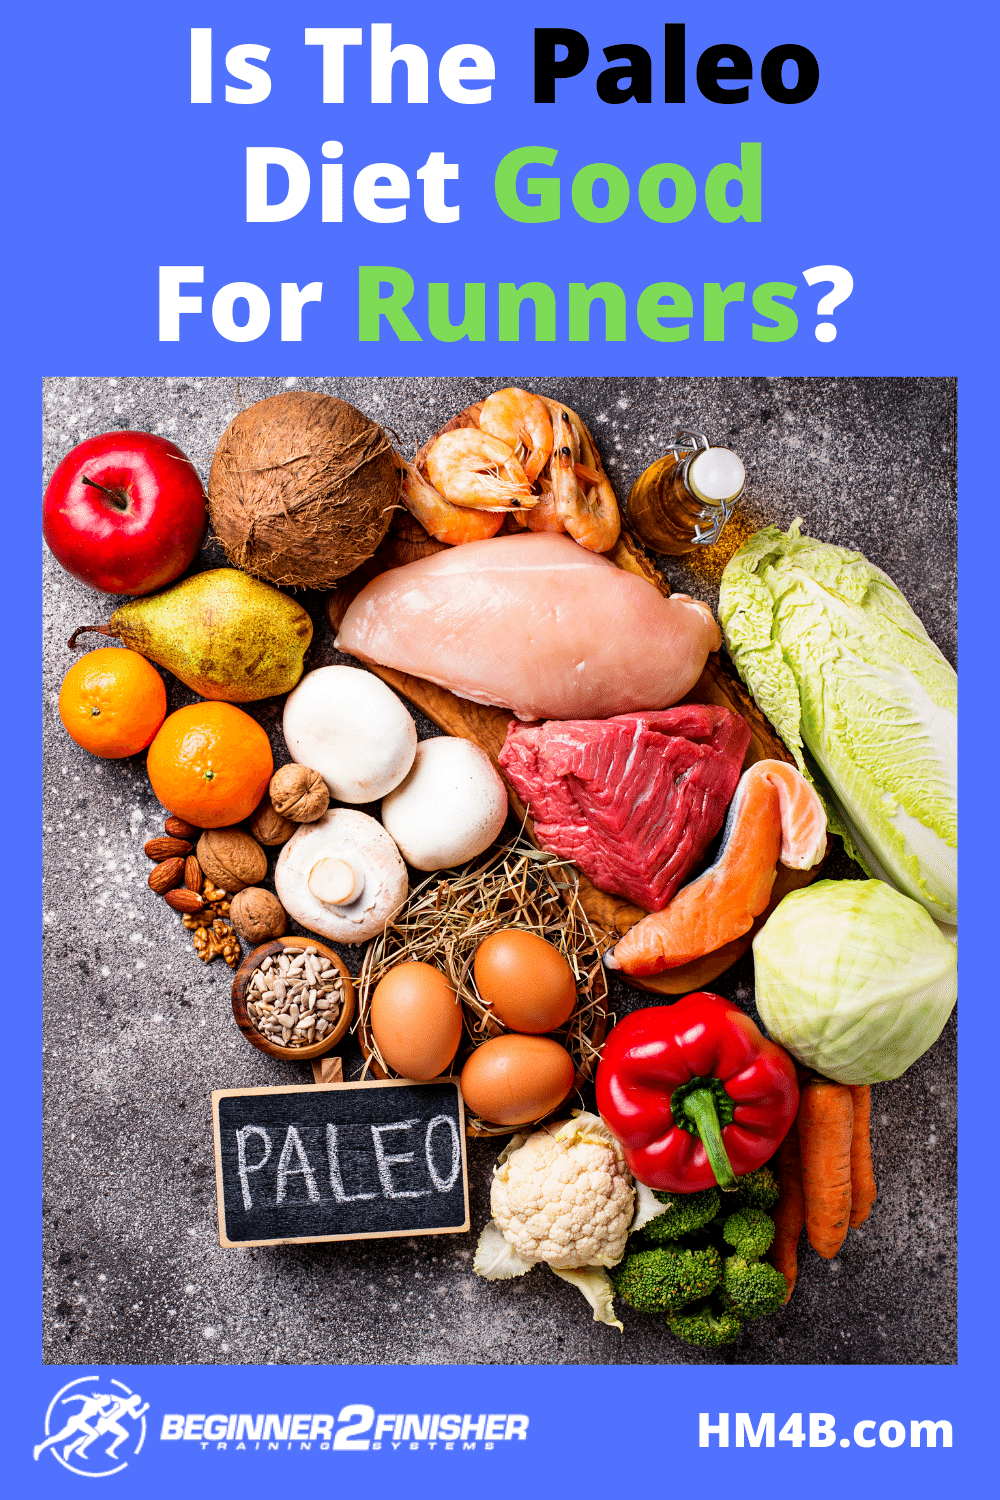 What Is The Paleo Diet - Is The Paleo Diet Good For Runners?